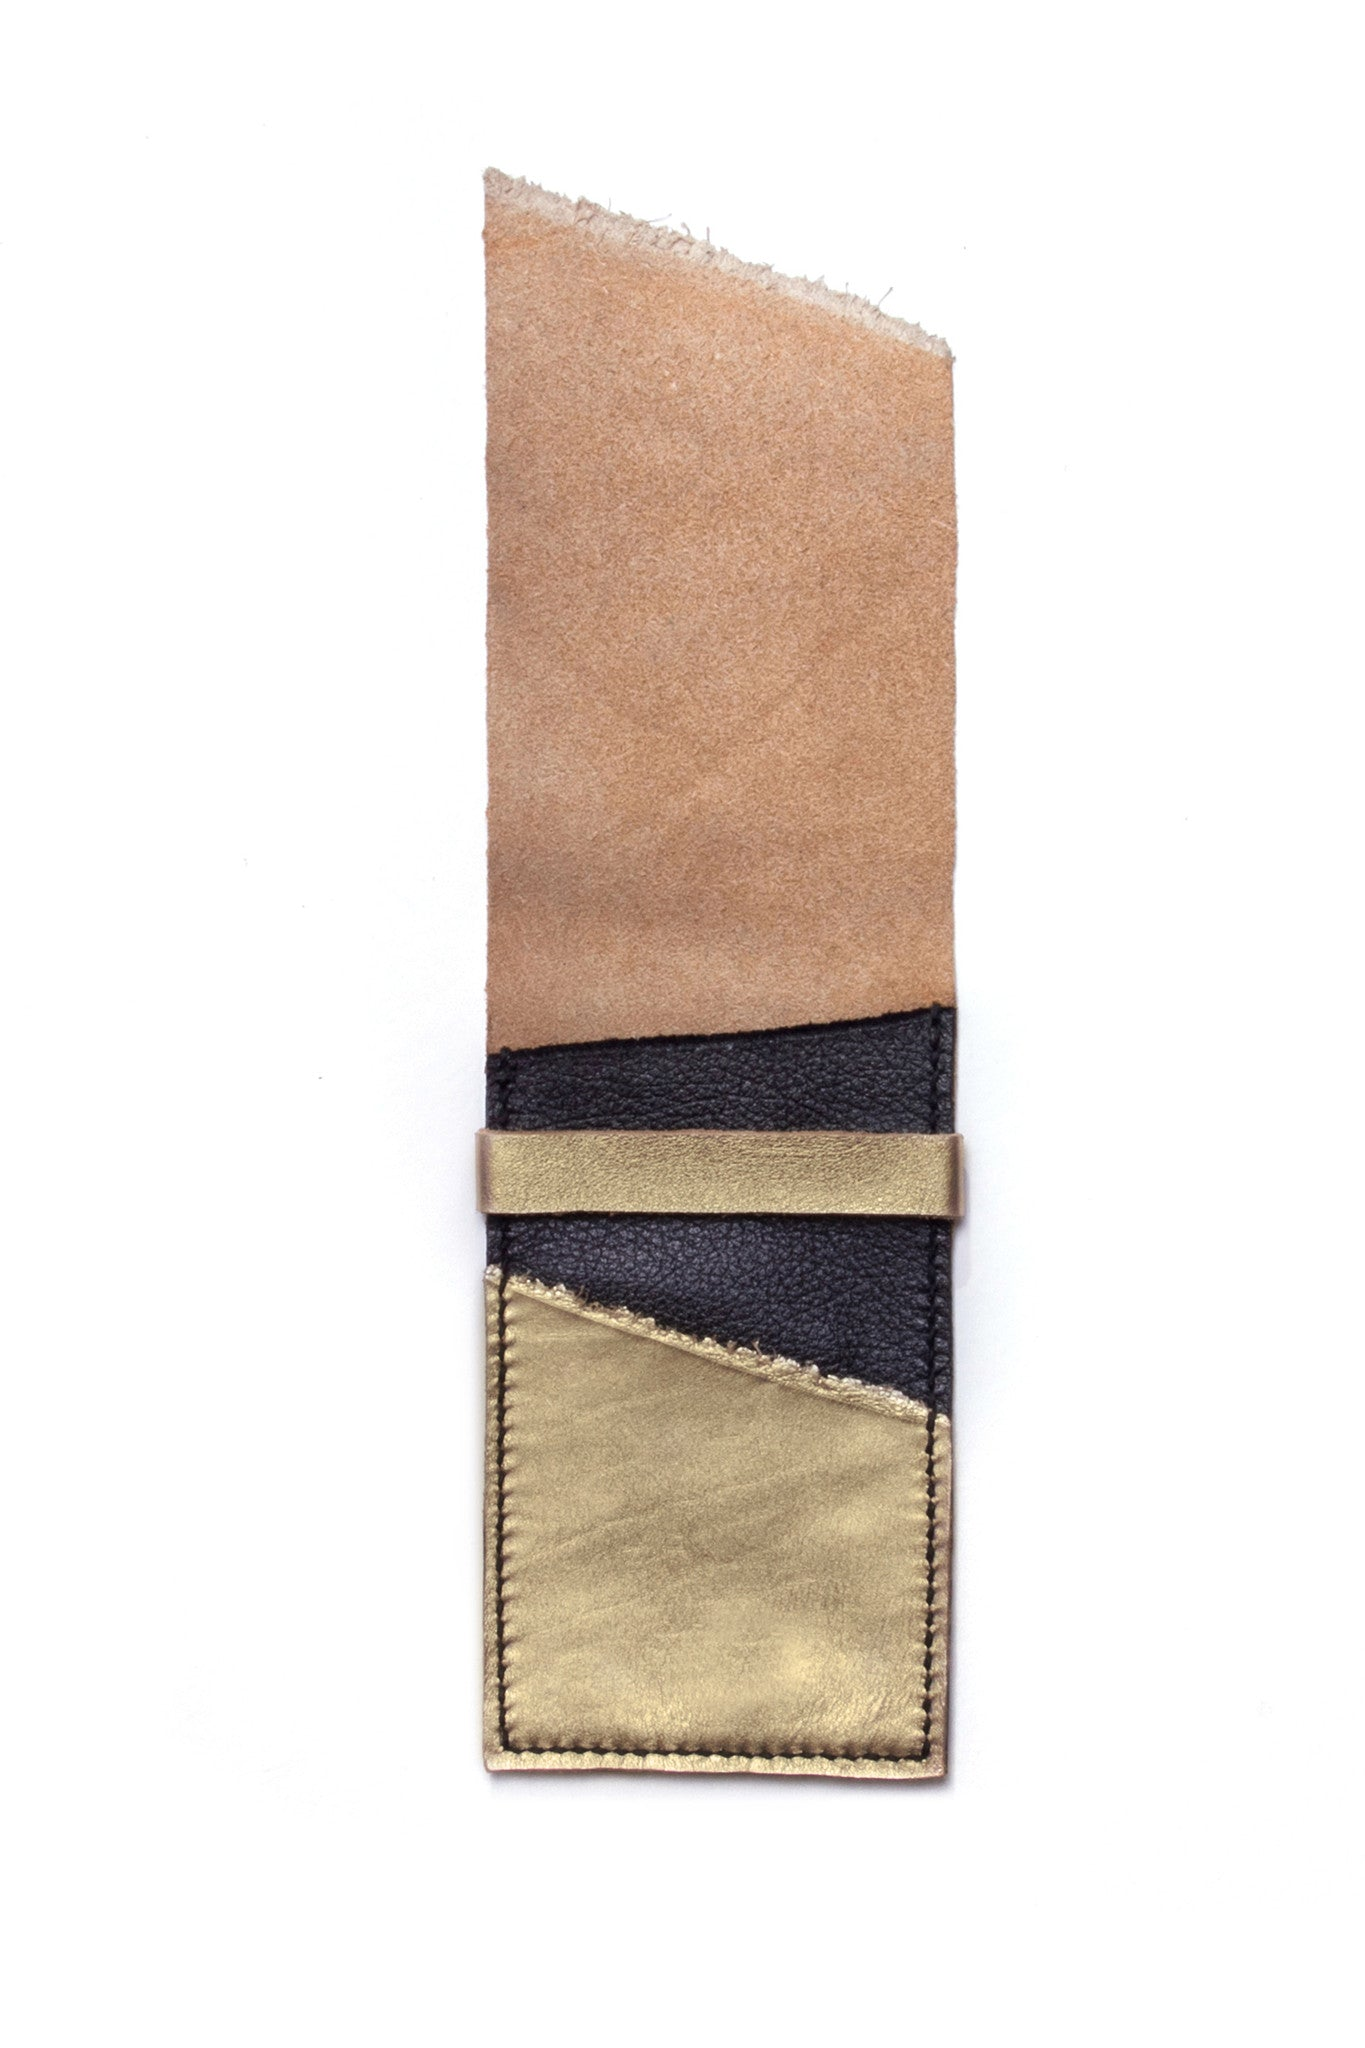 Stella Gold & Black Leather Raw iPhone Sleeve Open View by Liana Rosa